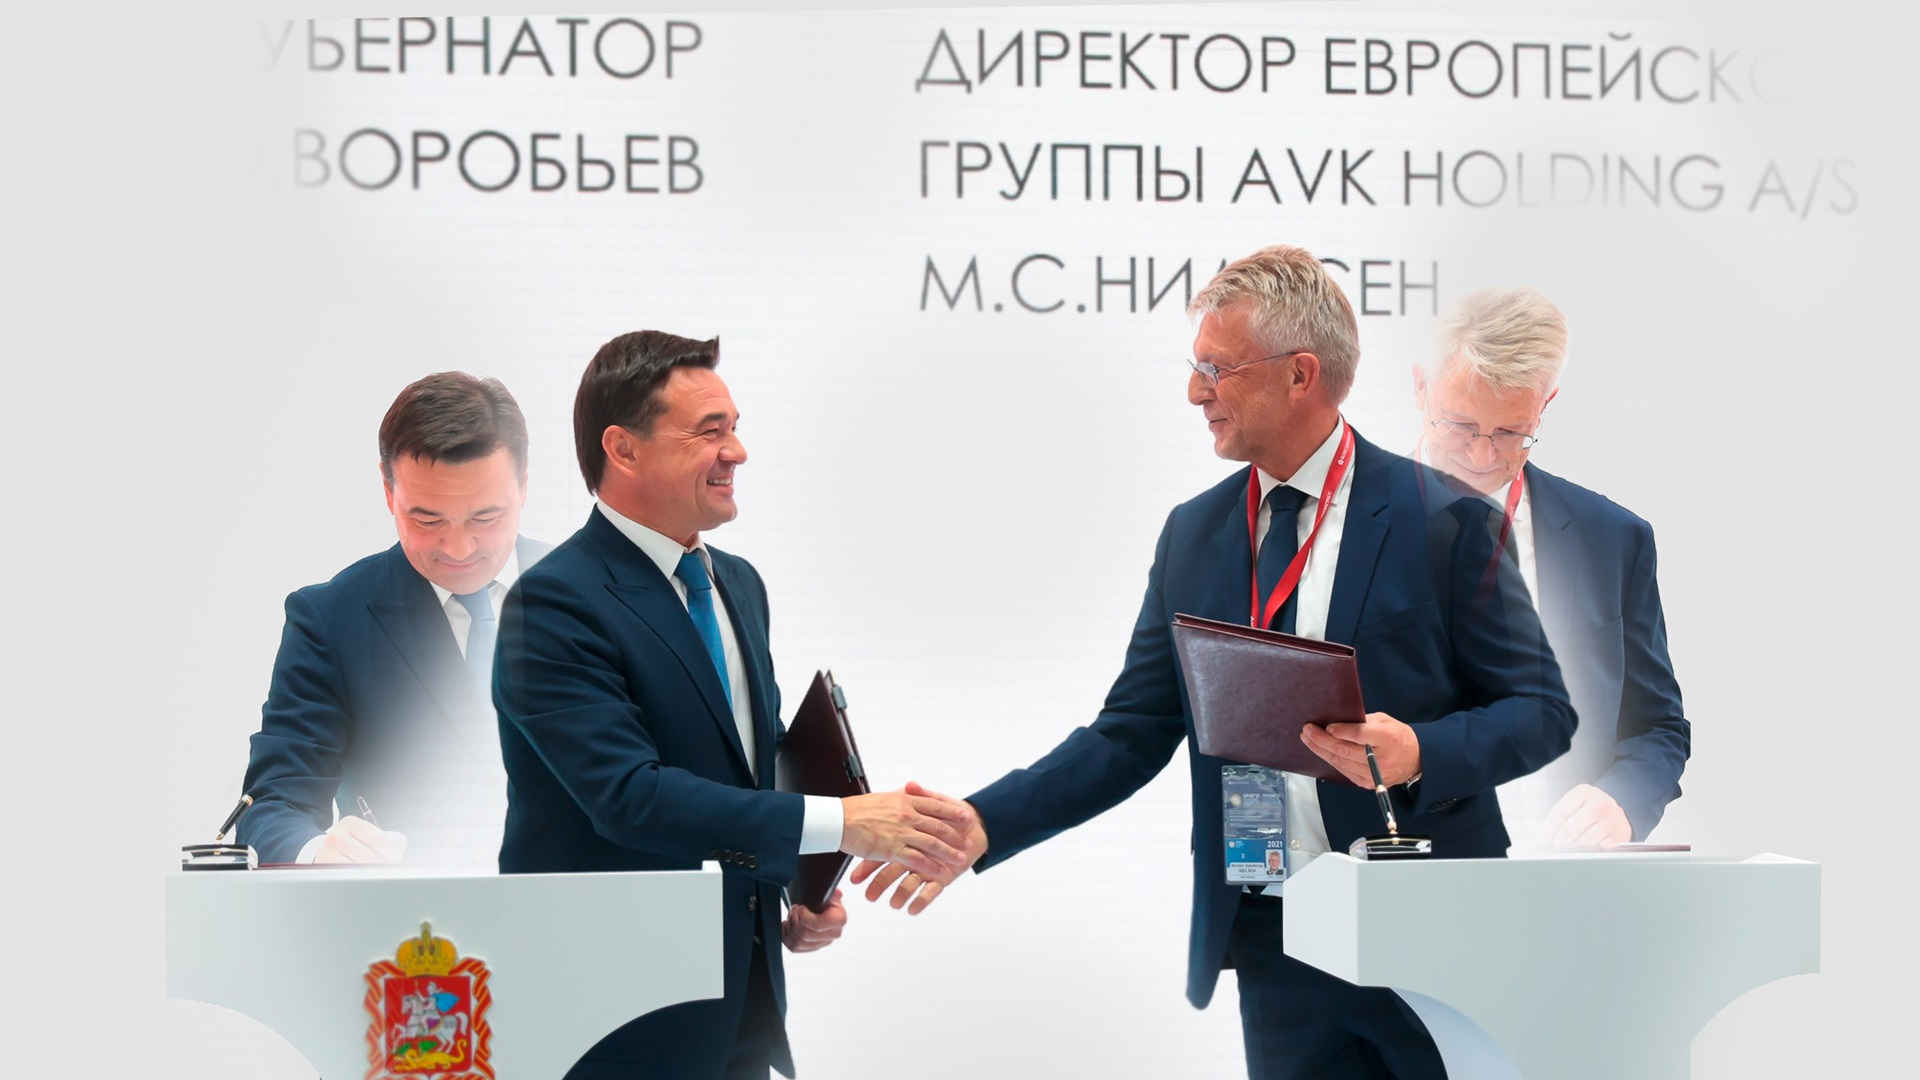 AVK announce plant construction in Russia